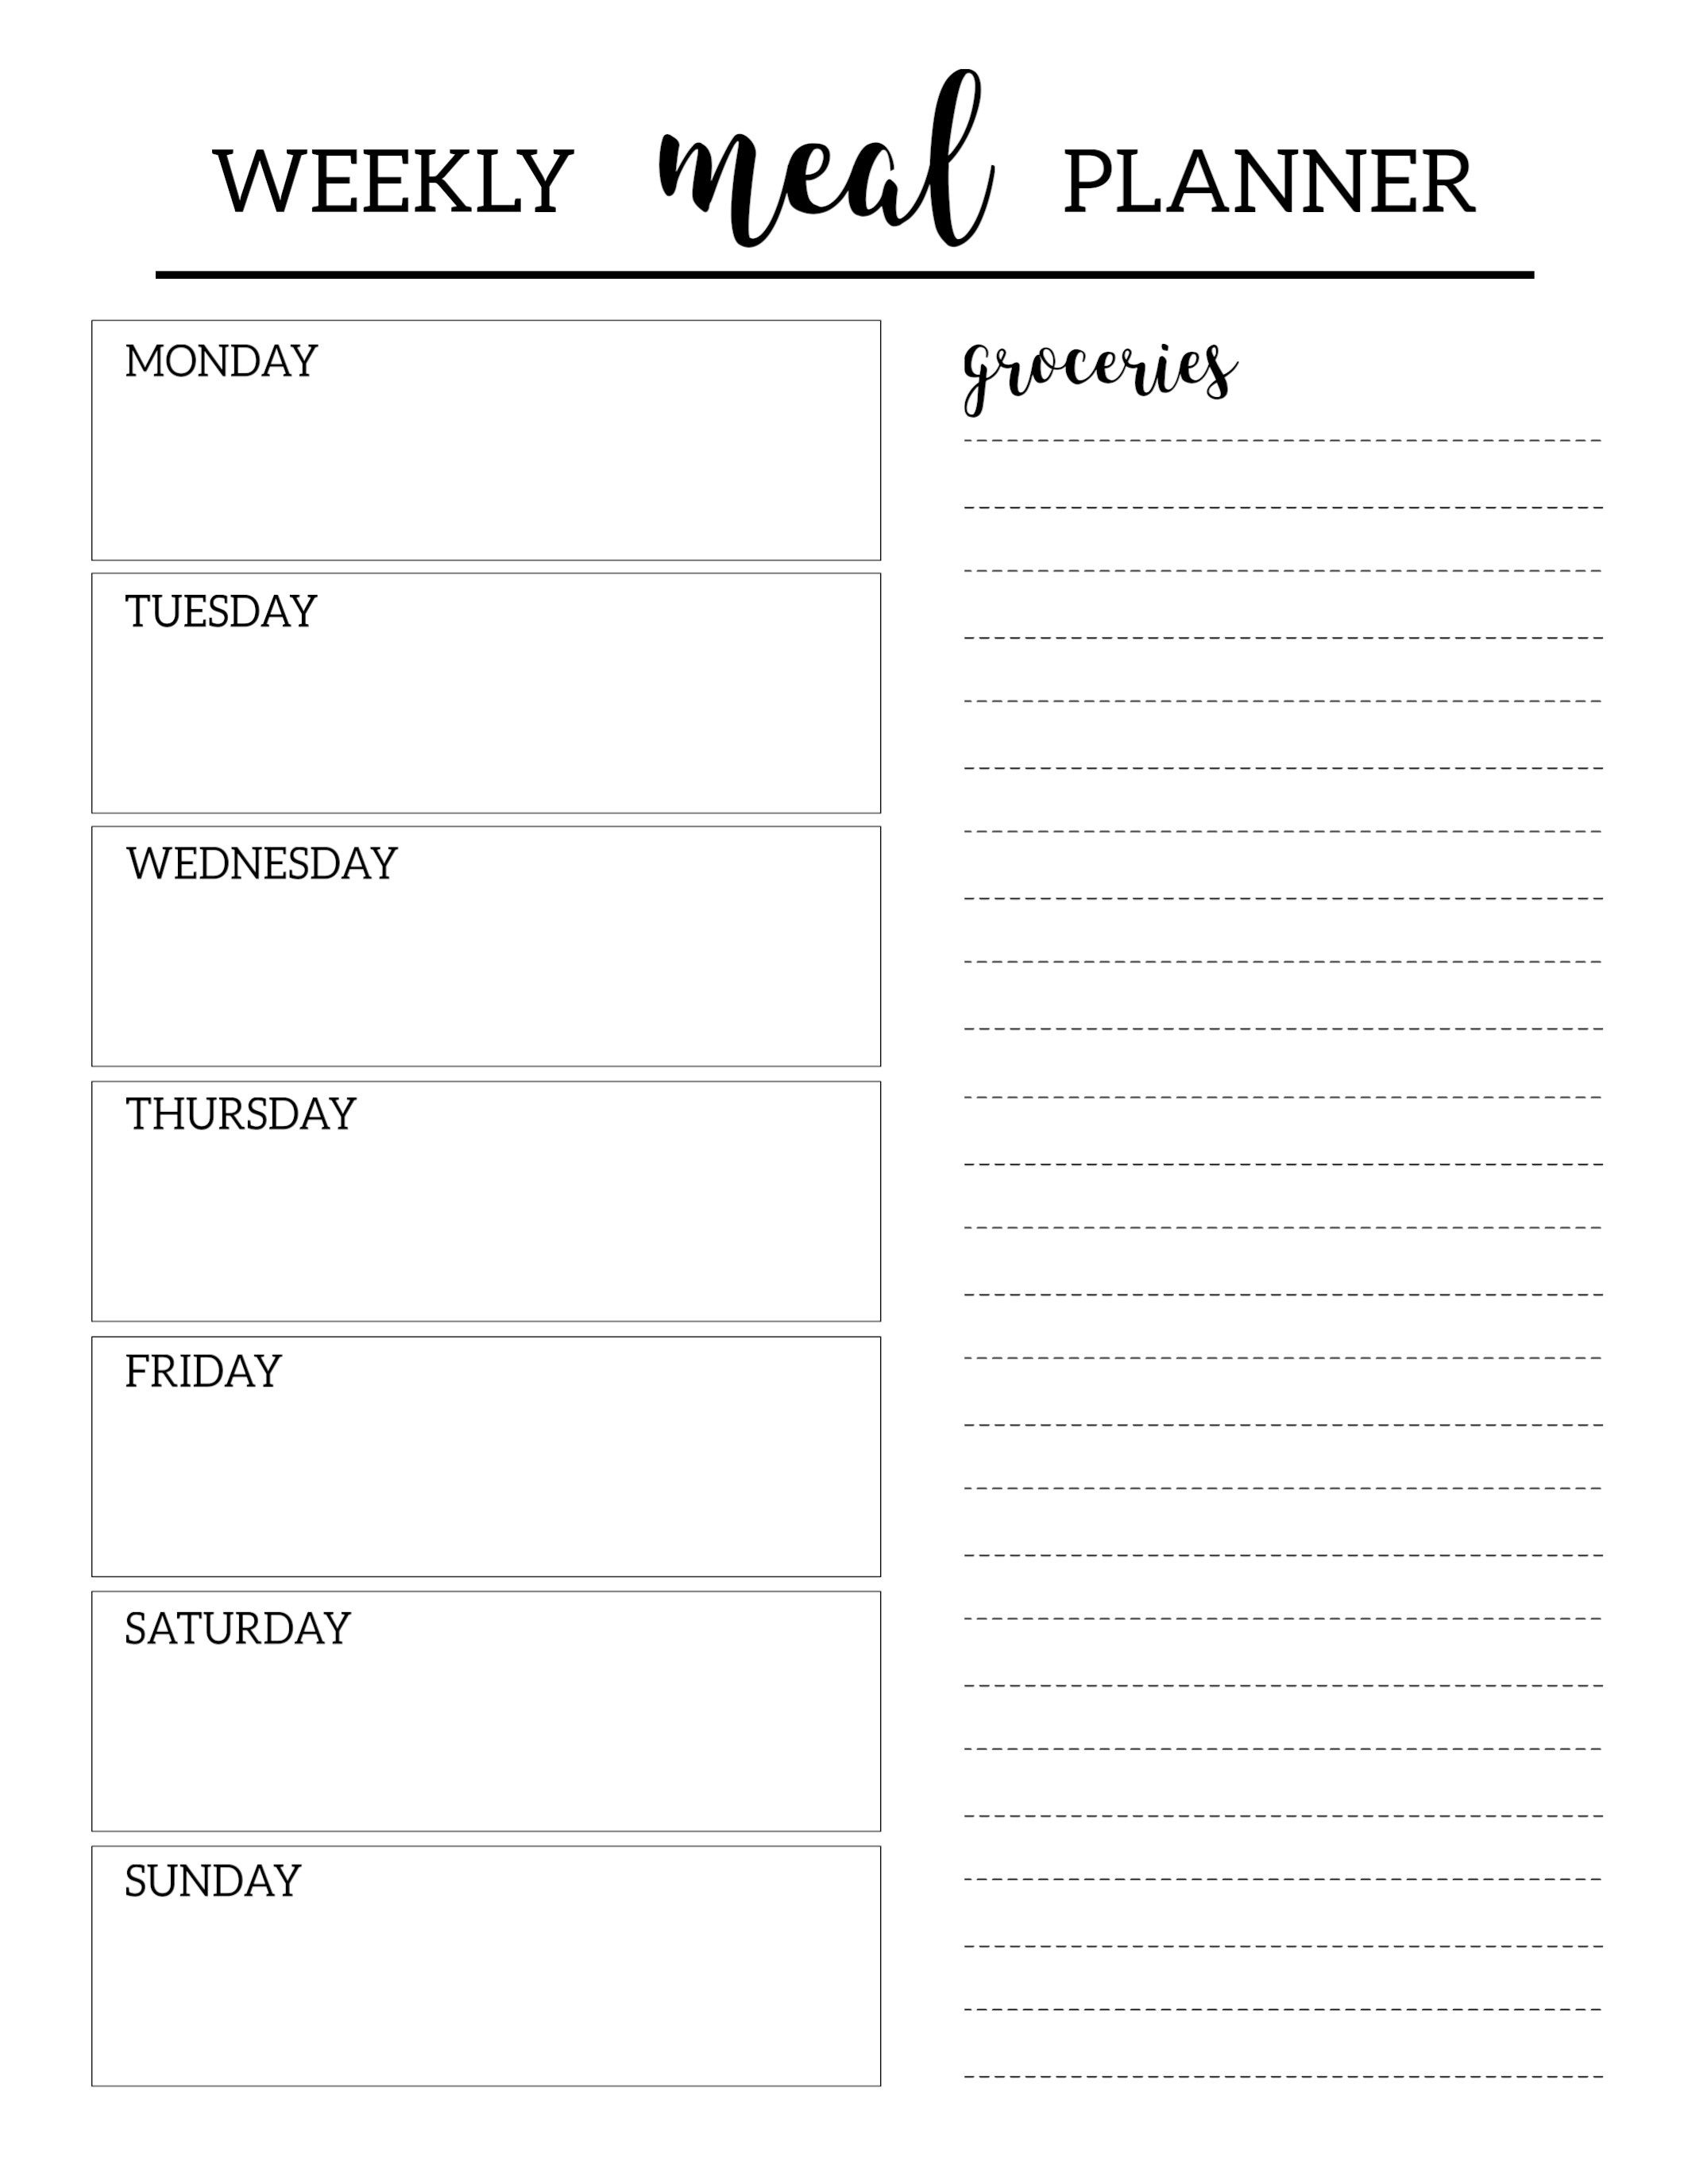 Free Printable Meal Planner Template | Organization | Pinterest - Free Printable Menu Planner